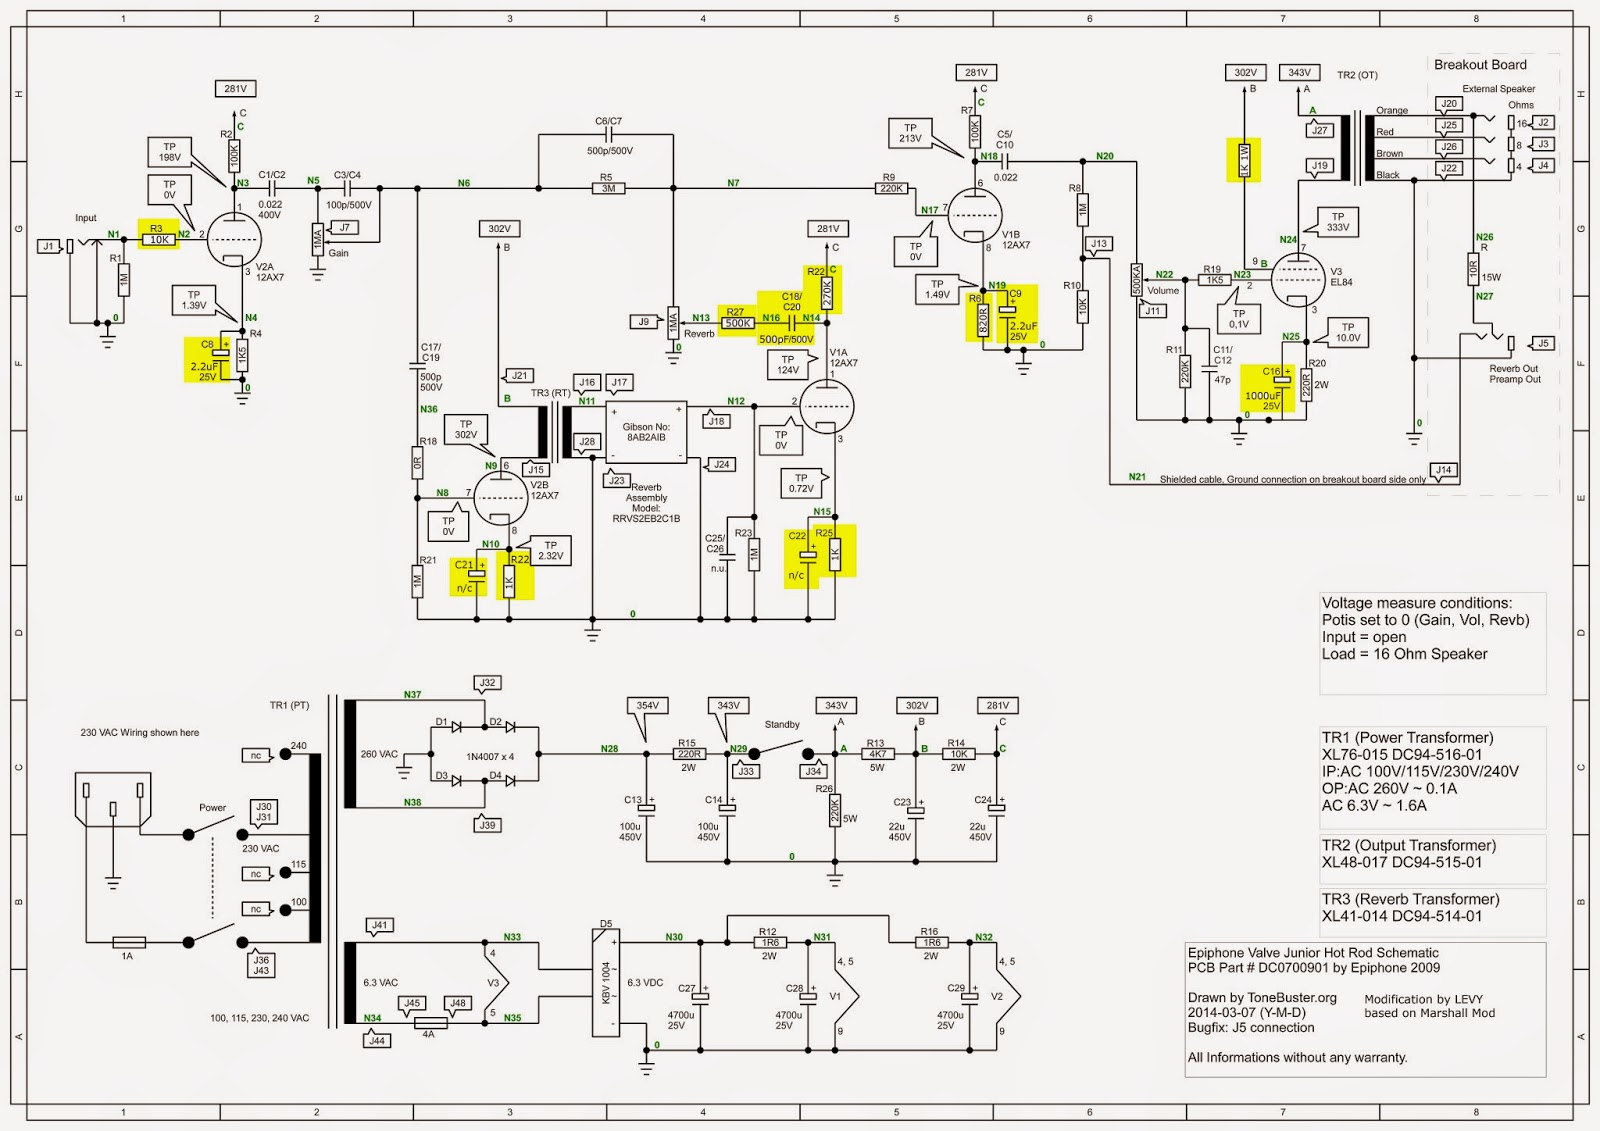 hot rod valve jr schematic enthusiast wiring diagrams u2022 rh rasalibre co 262b wiring schematic for [ 1600 x 1131 Pixel ]